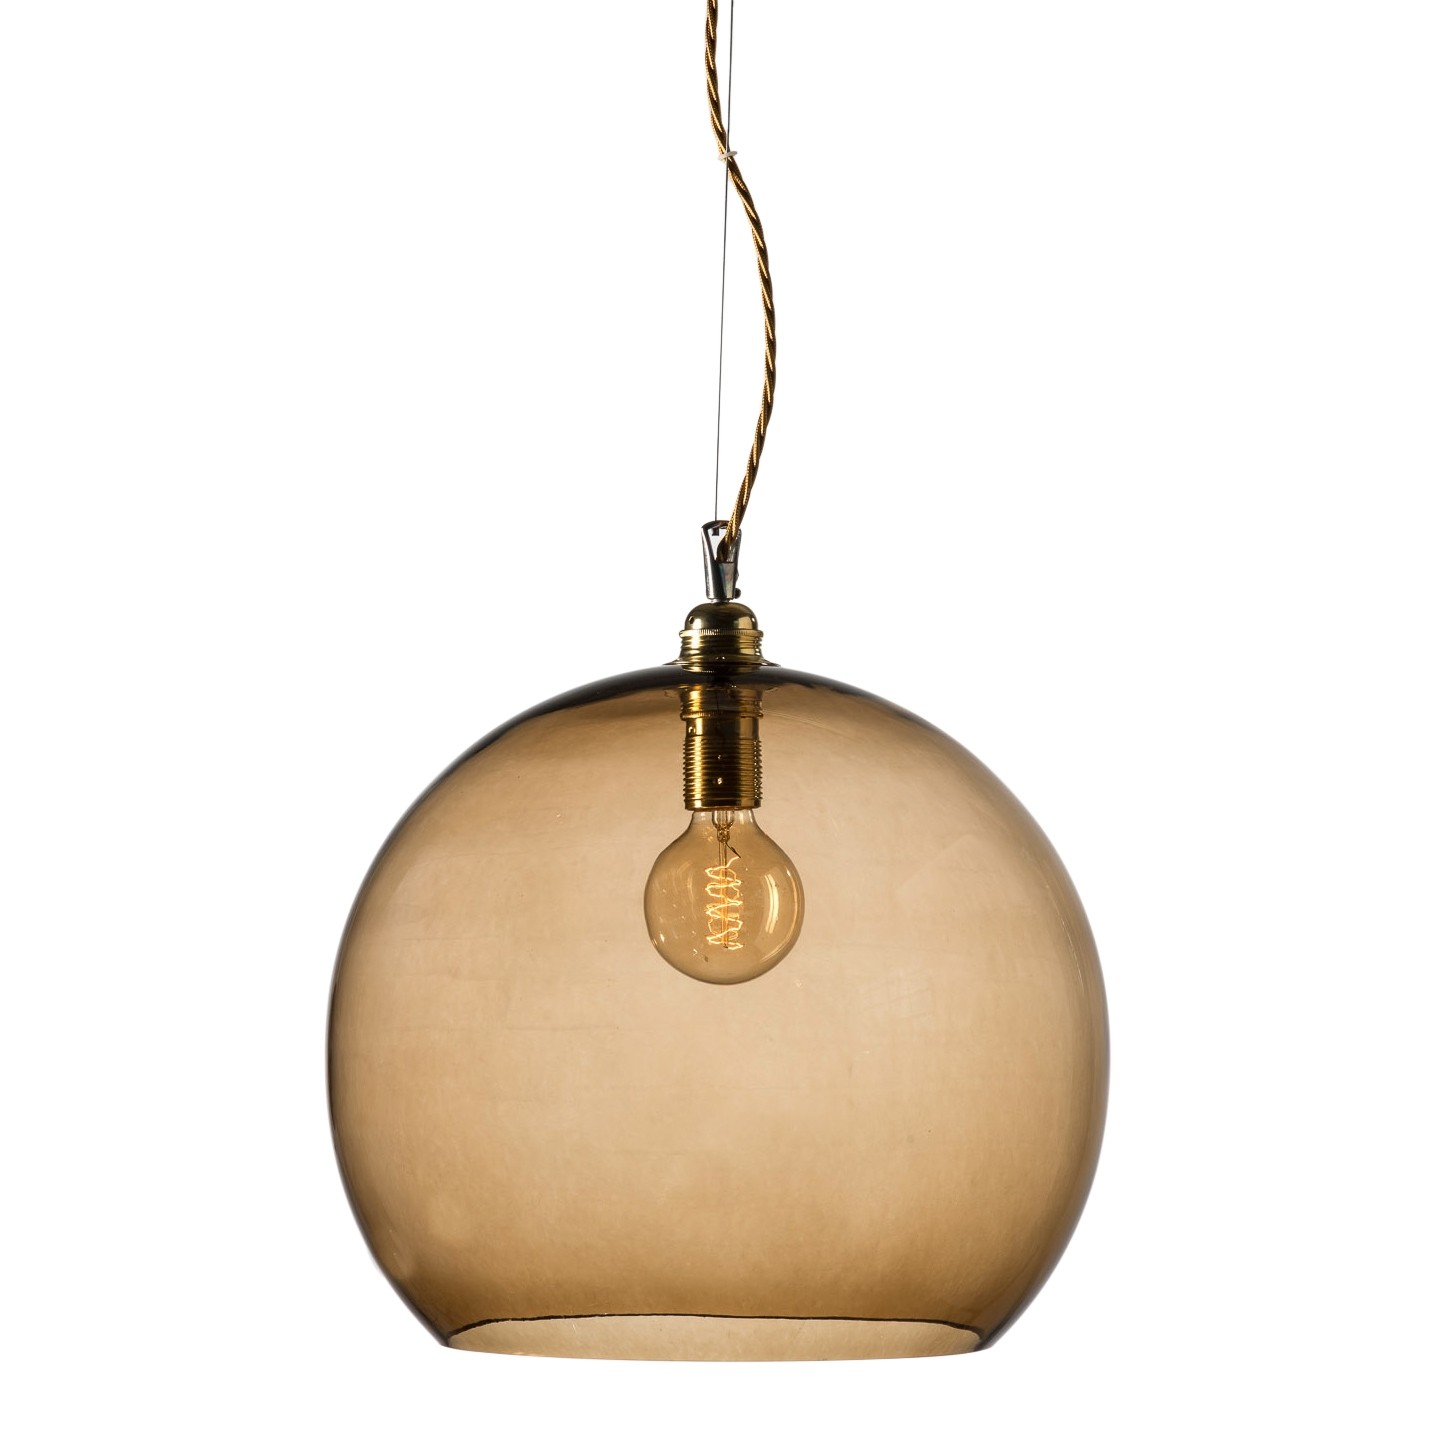 orb-glass-pendant-39-cm-chestnut-brass-wire